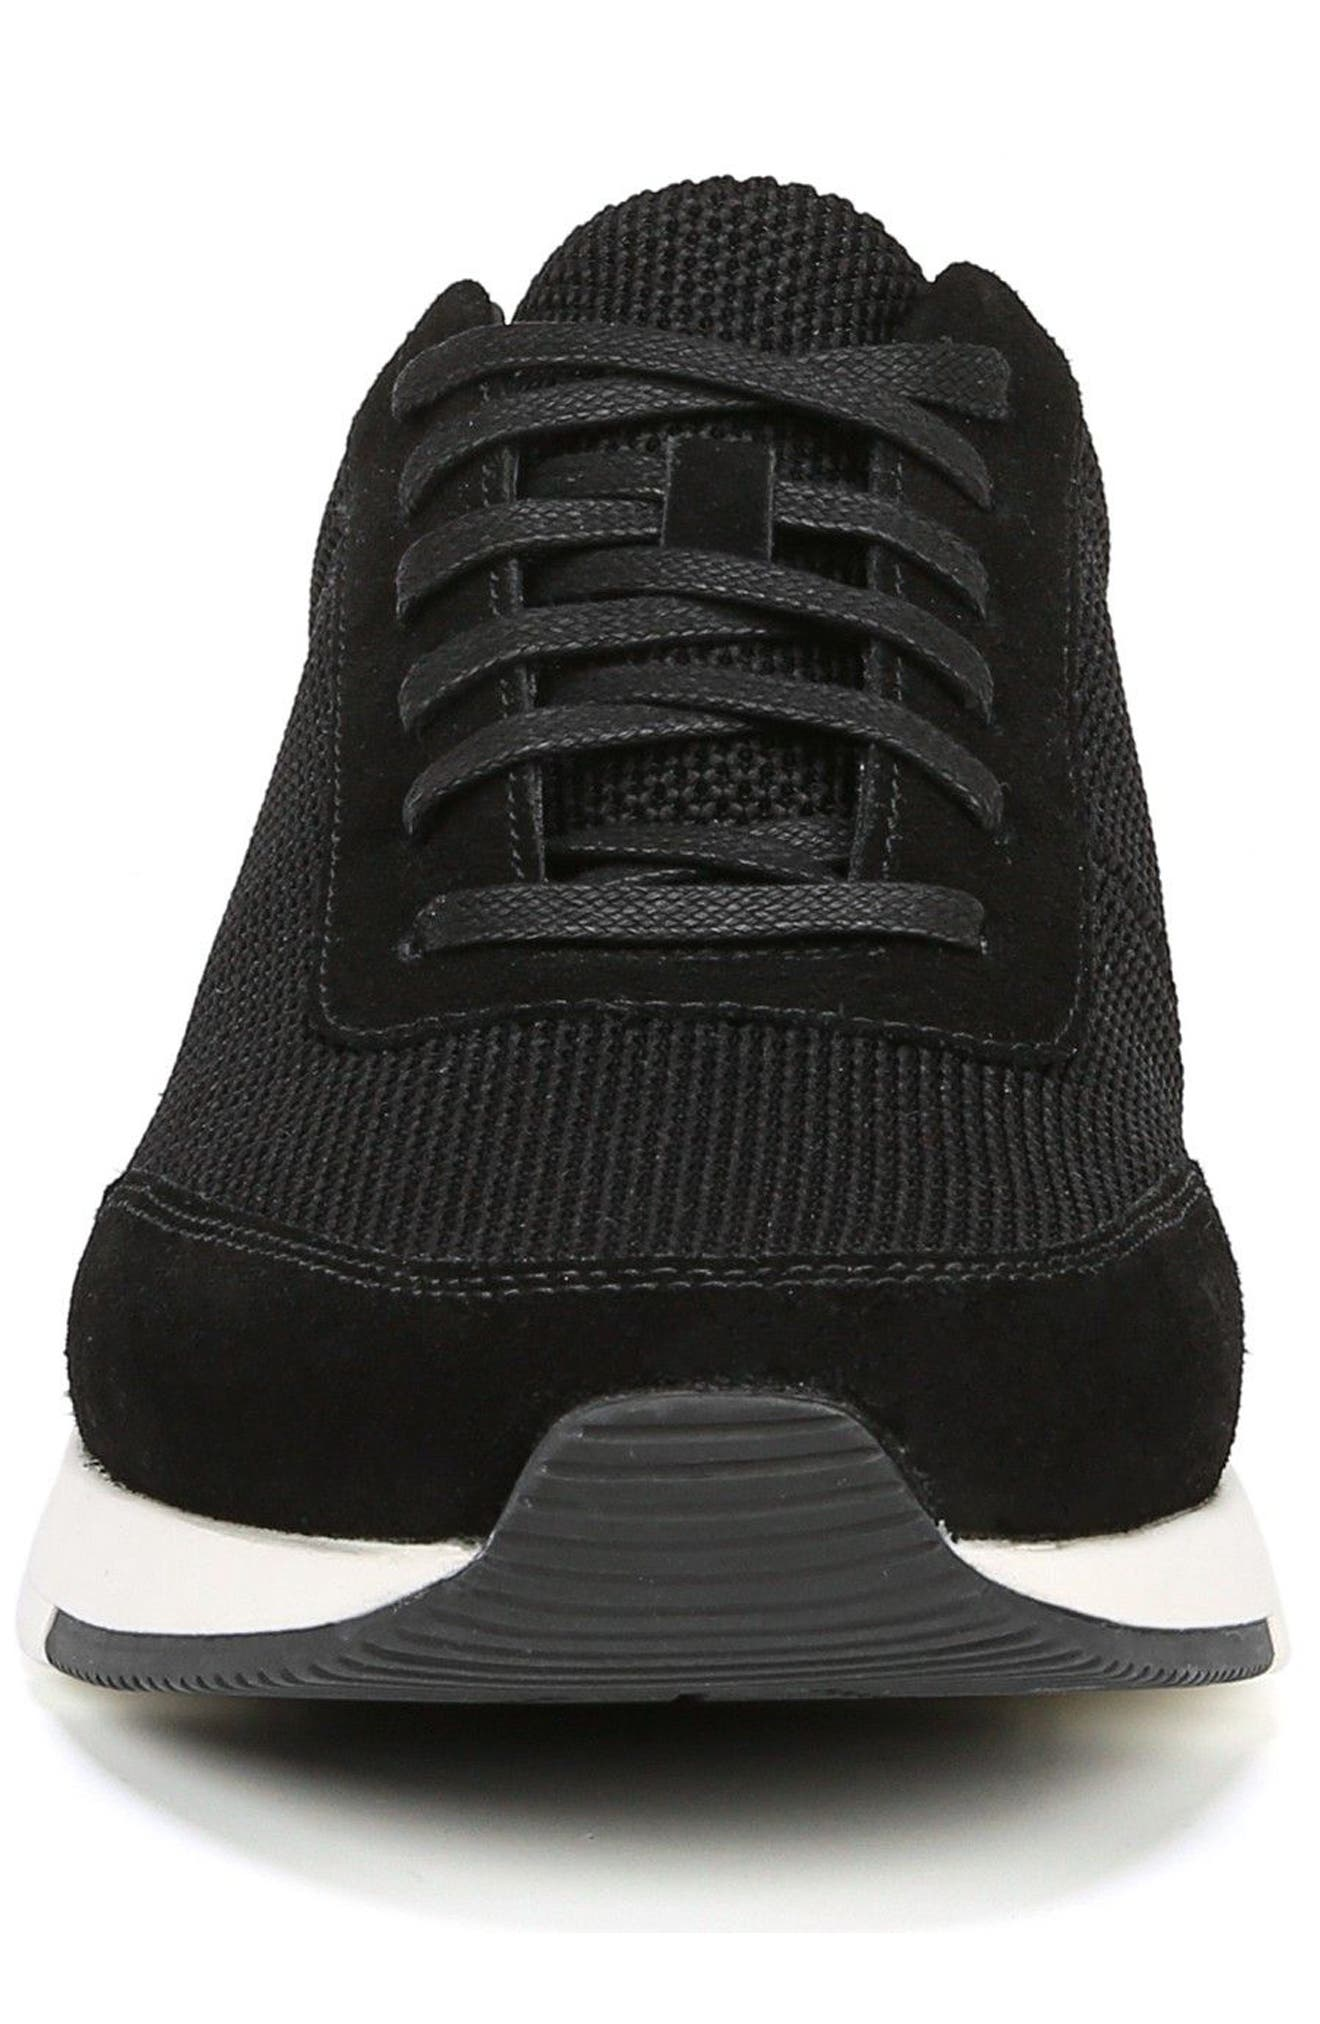 Payton Mesh Sneaker,                             Alternate thumbnail 4, color,                             BLACK